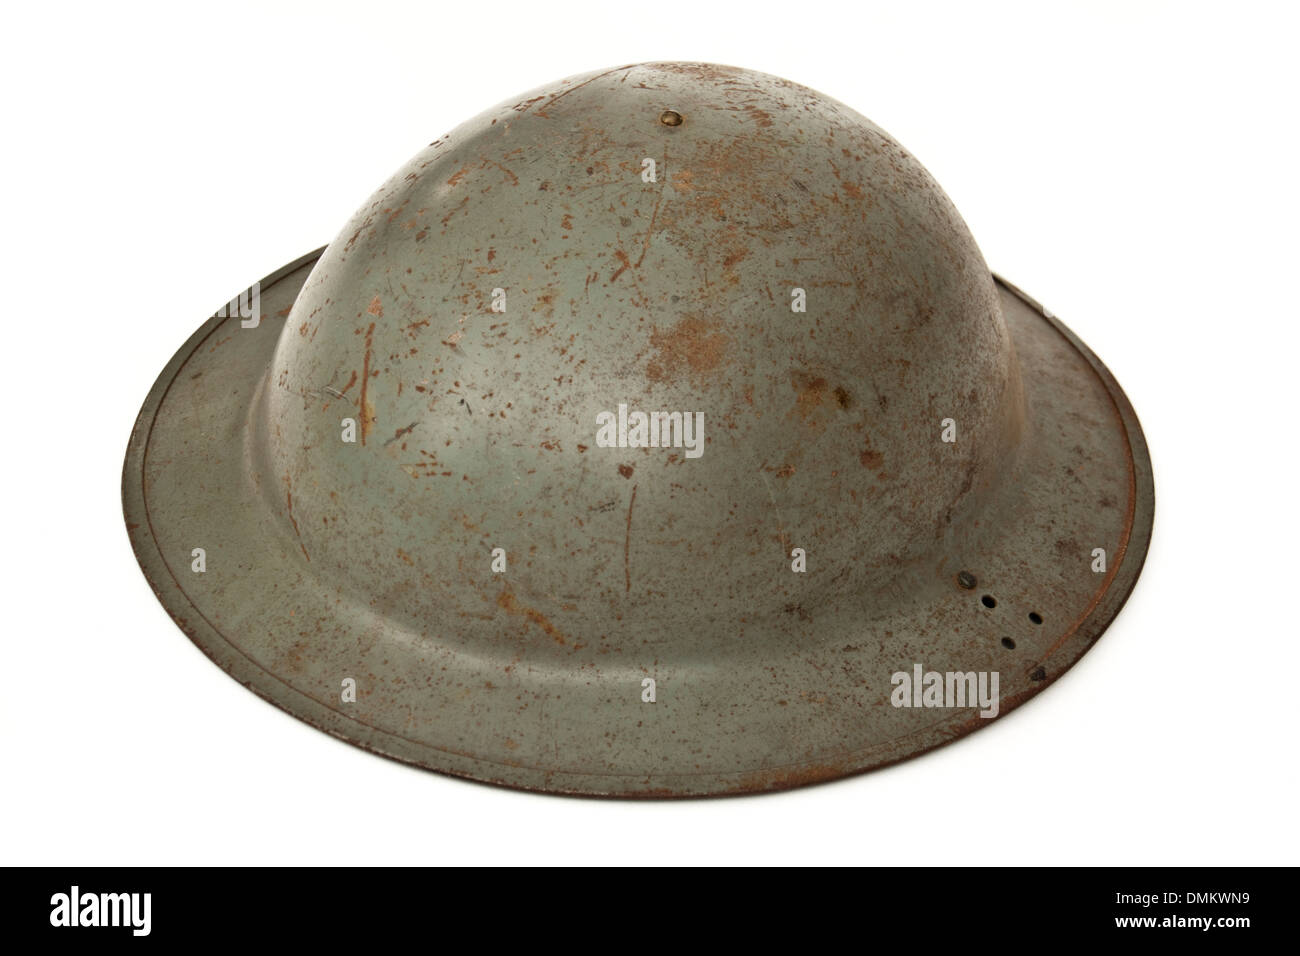 Authentic WW2 British Army / Home Guard Brodie helmet from 1943 - Stock Image